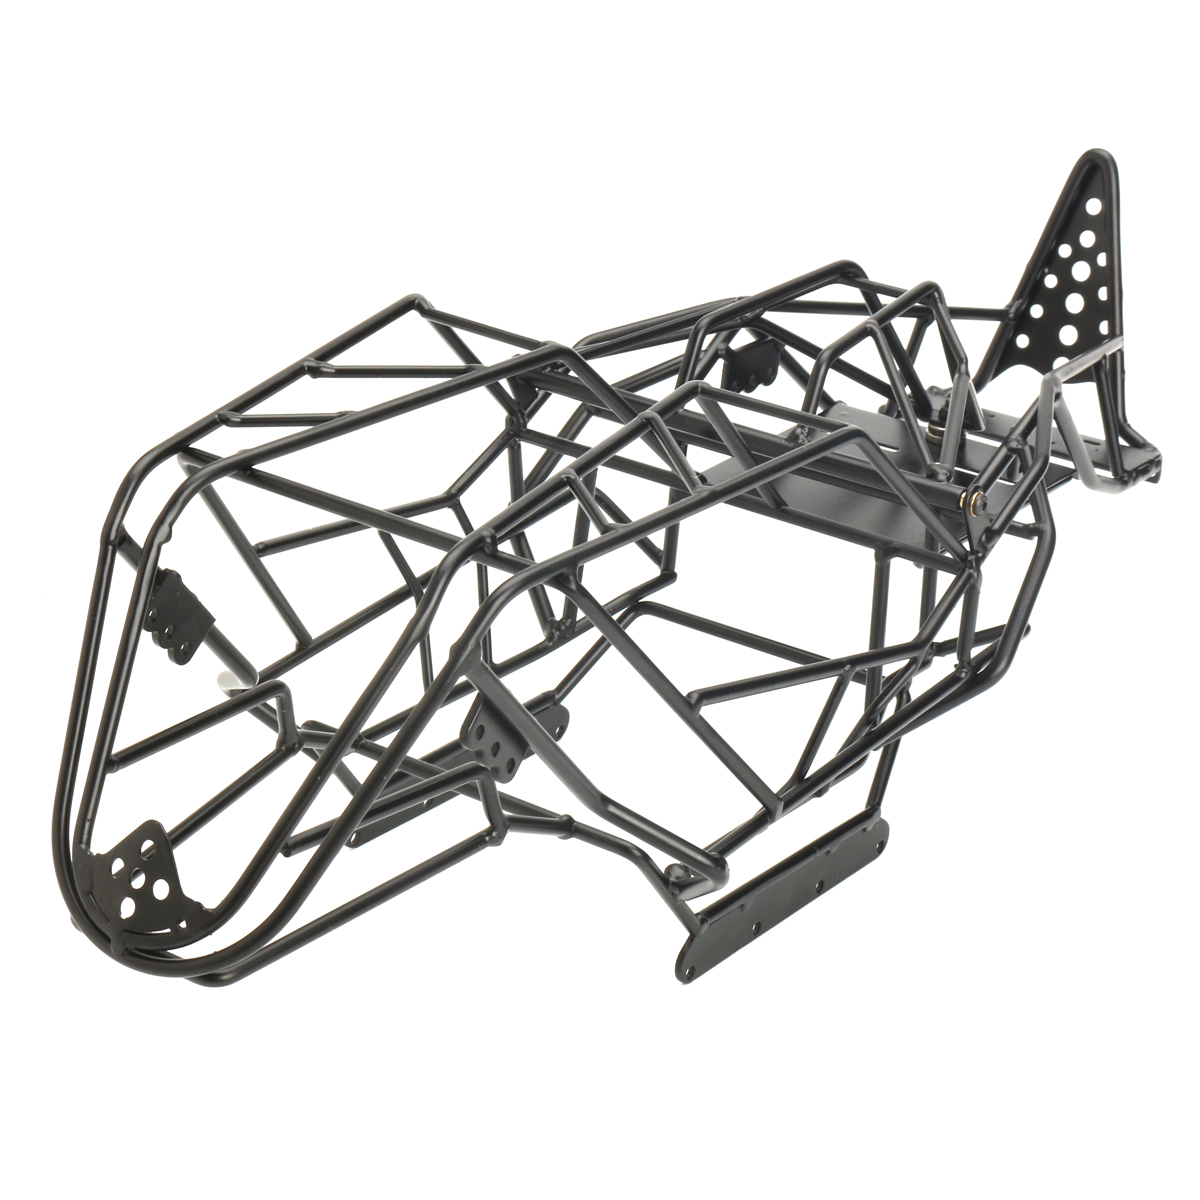 все цены на Steel Roll Cage Frame Body Black Steel Frame Body Chassis For Axial With RCX10 1/10 RC Rock Car Crawler Climbing Truck Parts онлайн